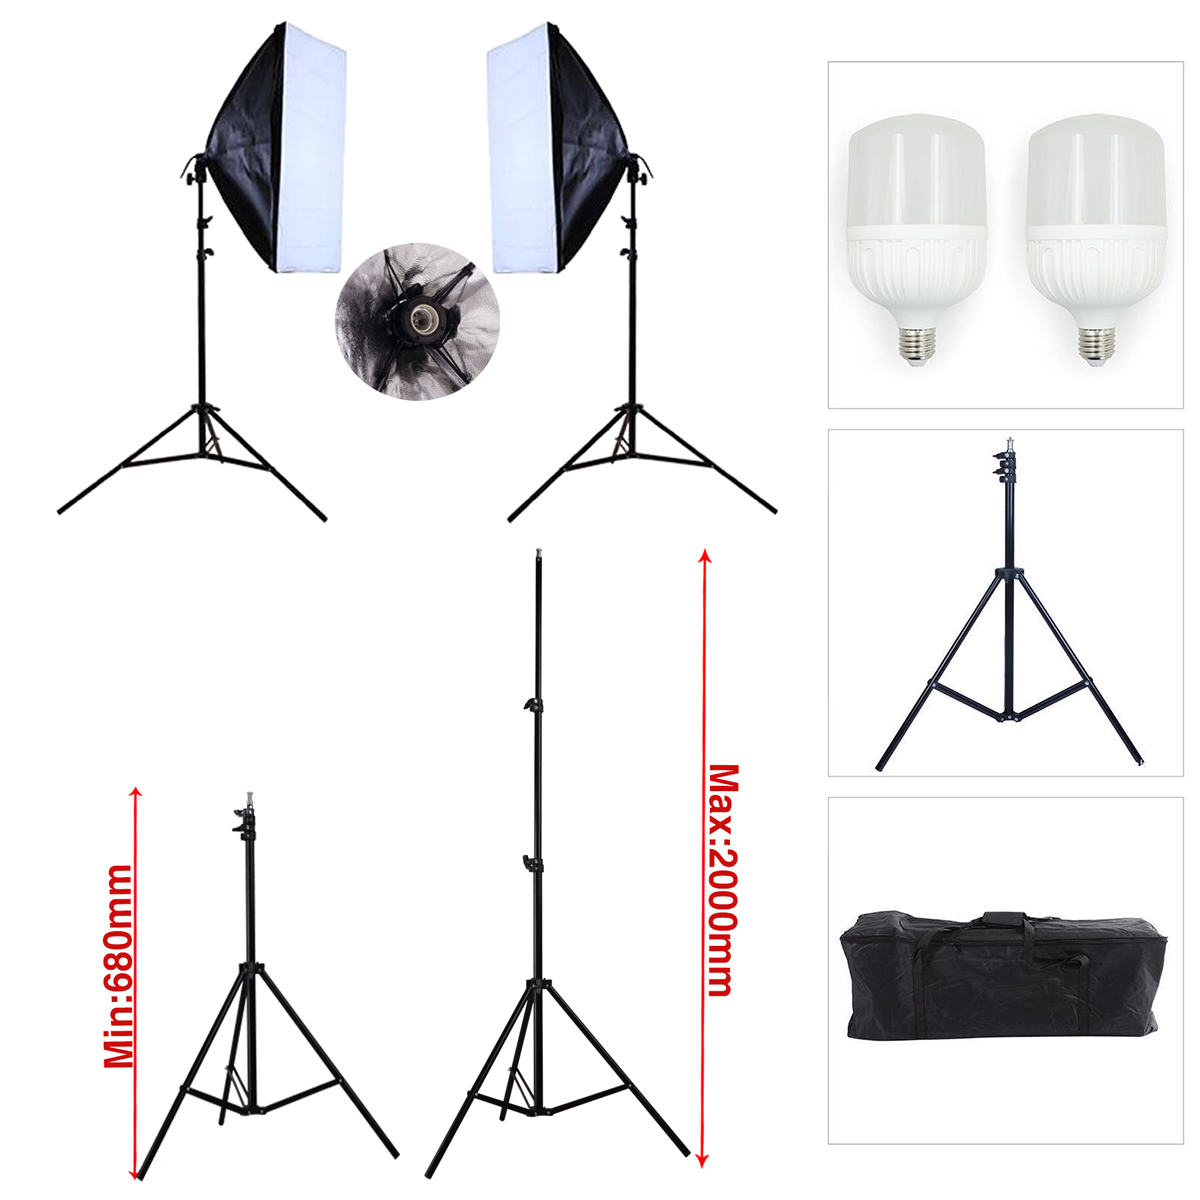 Softbox szett LED 2x28W, 2x2m állvánnyal